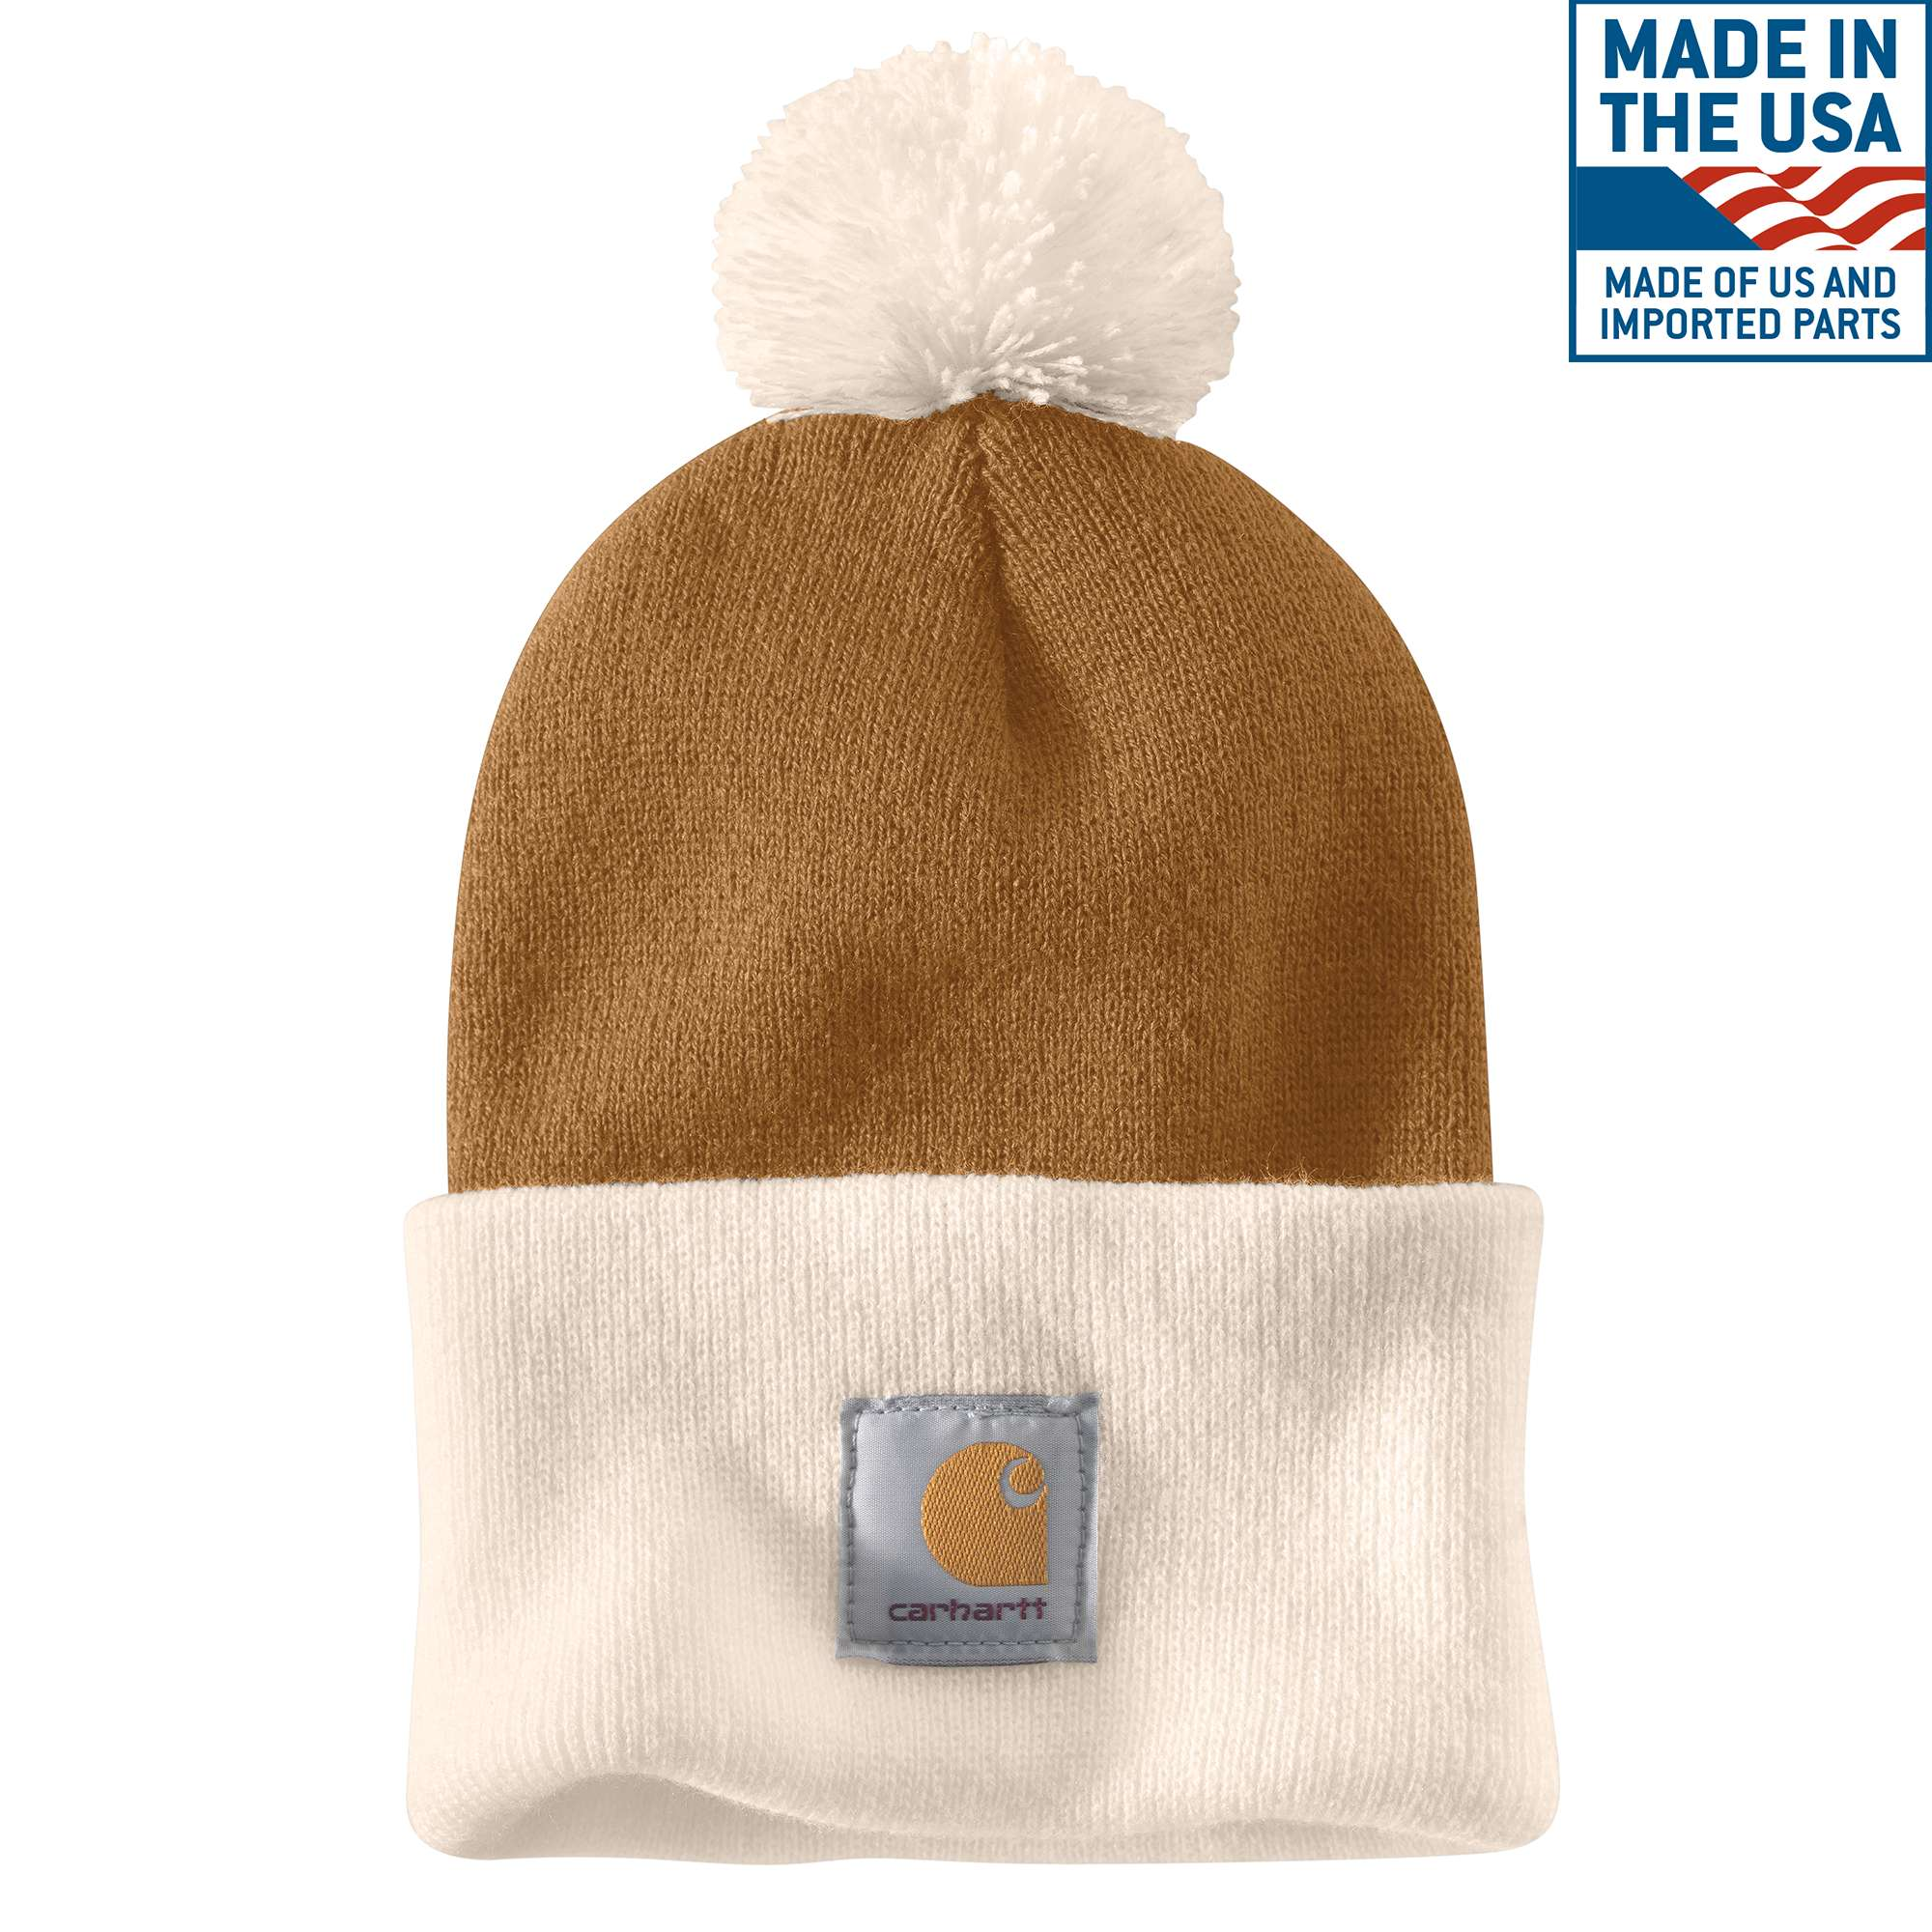 d9d4faa0d14 Carhartt M Lookout Hat - Phelps USA